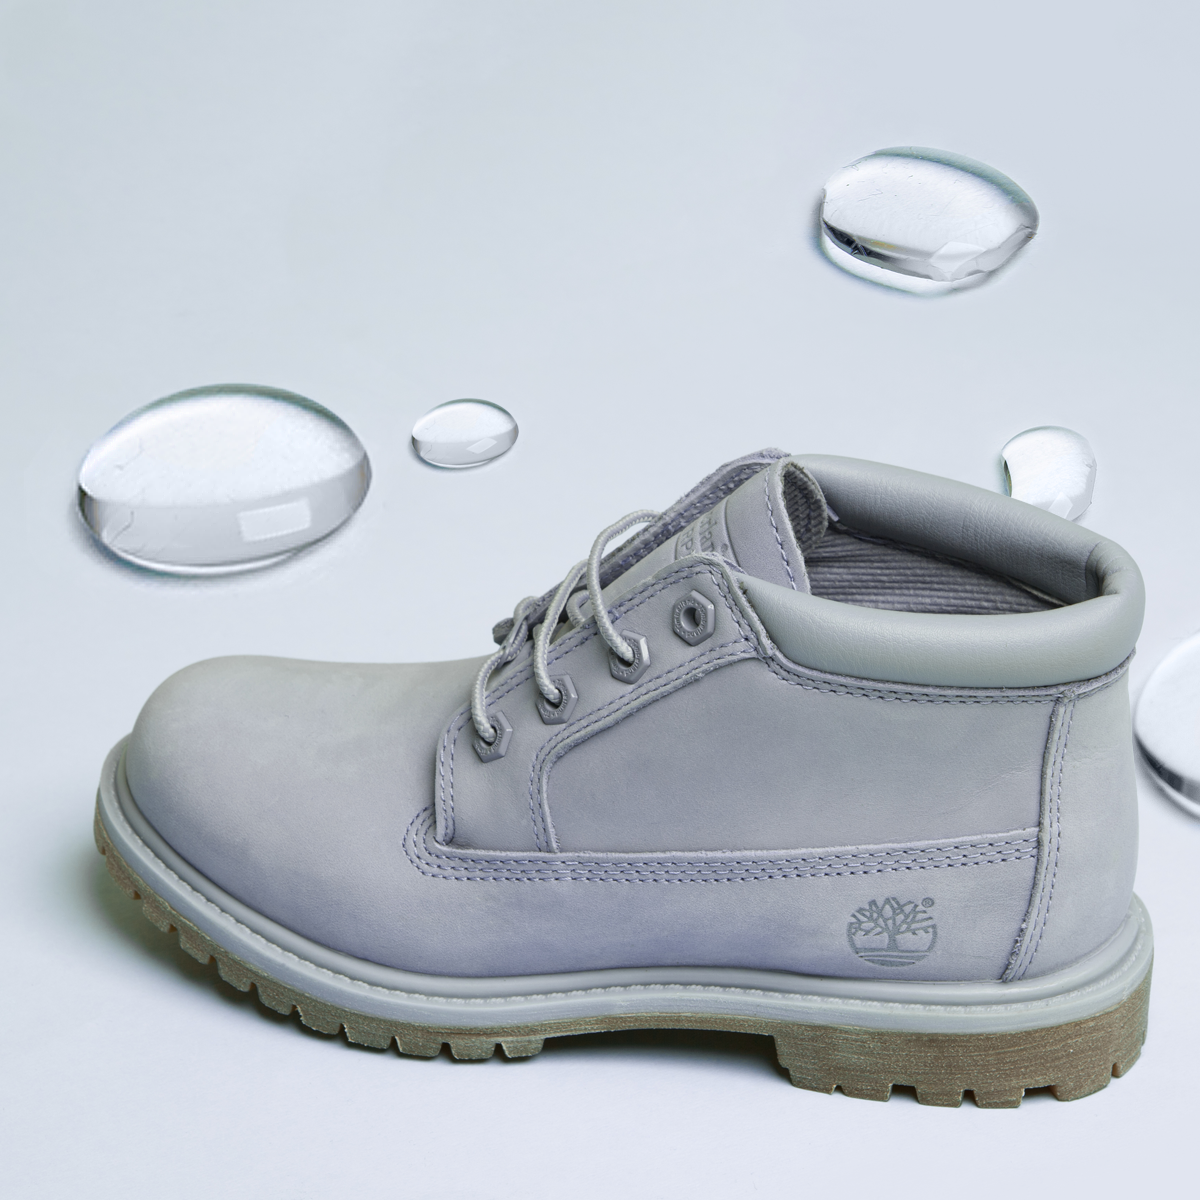 Rainy days ain't got nothing on our Timberland Chukka boots